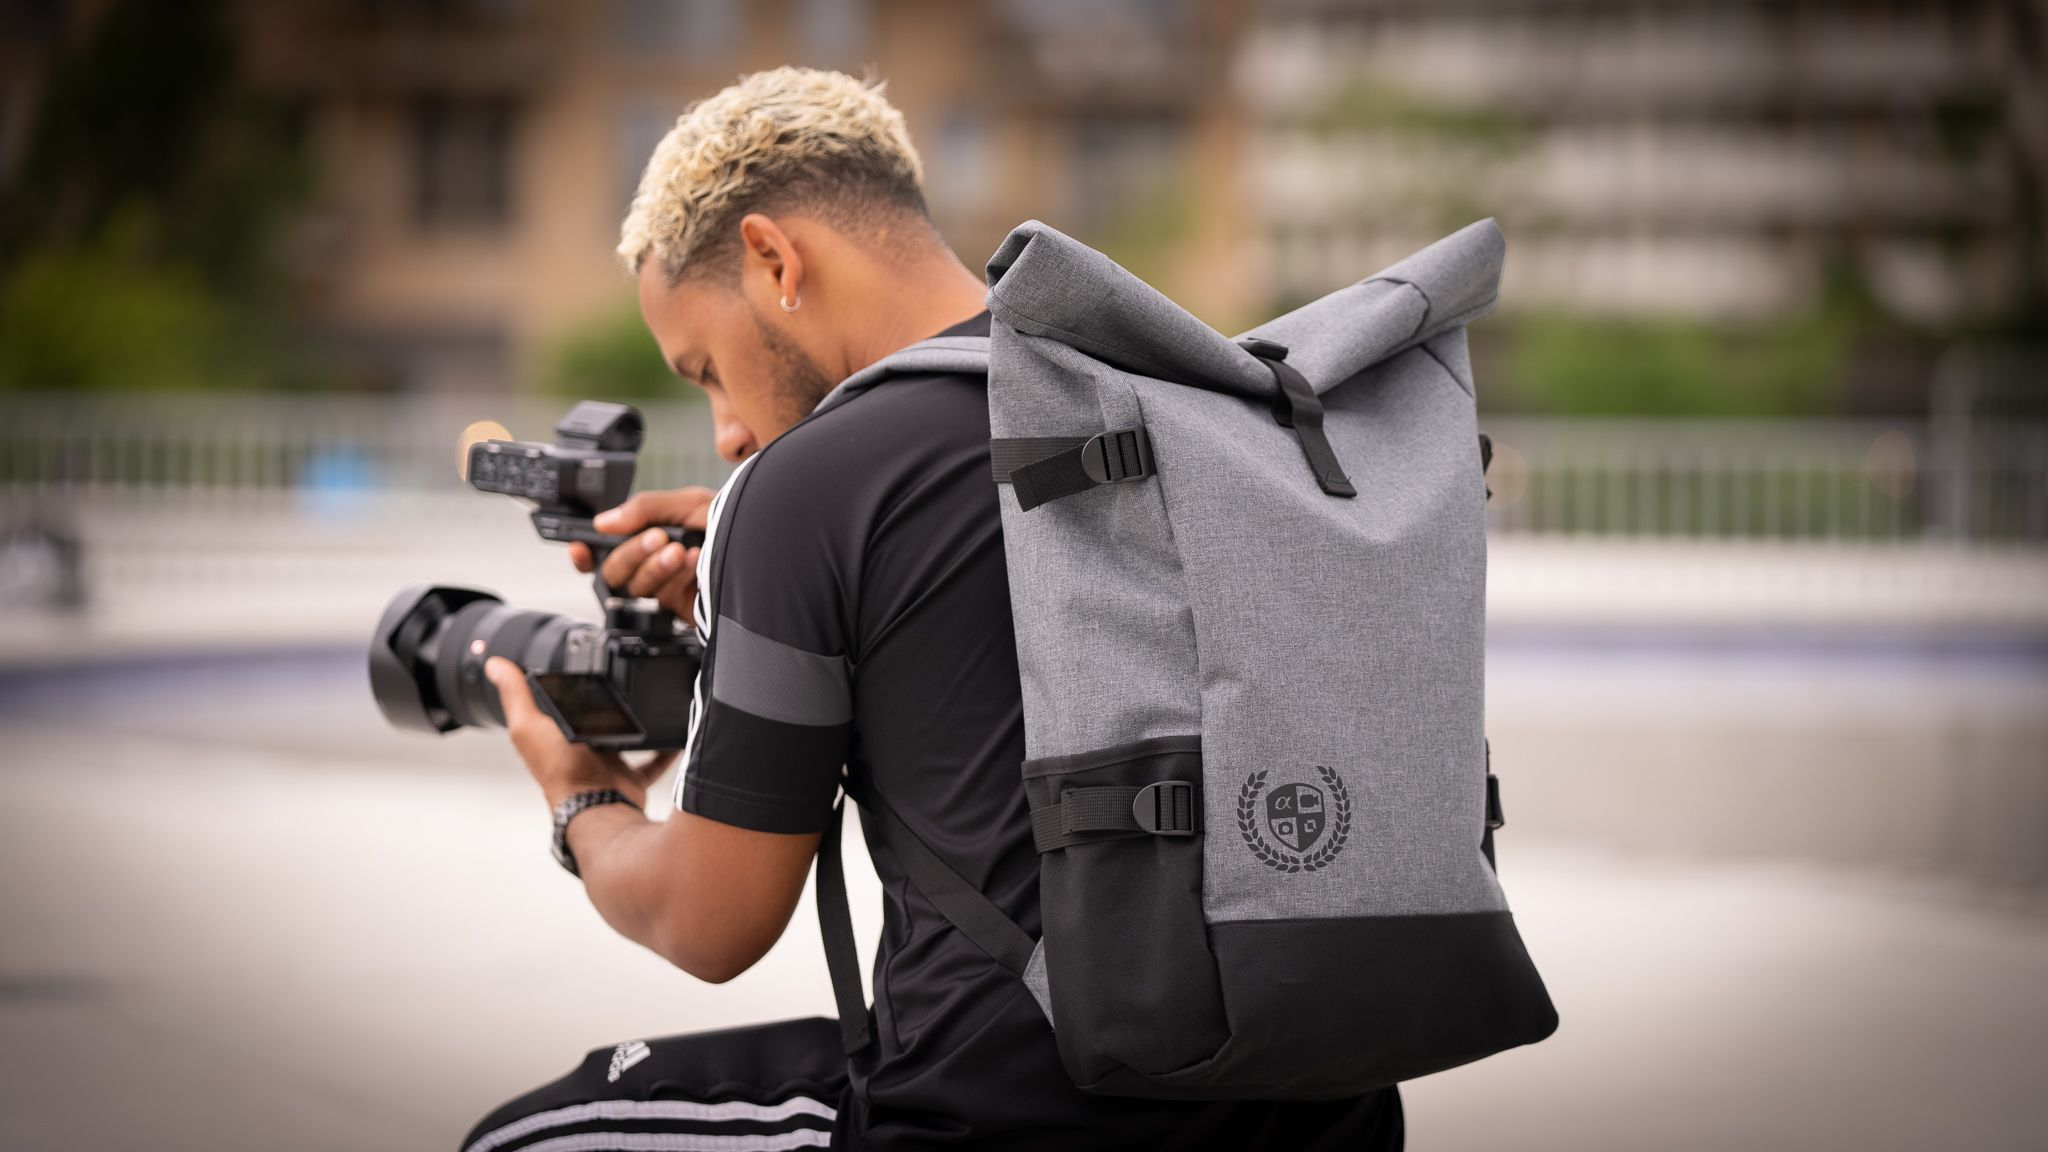 The Sony x Budgetcam x Kamera Express roll top backpack